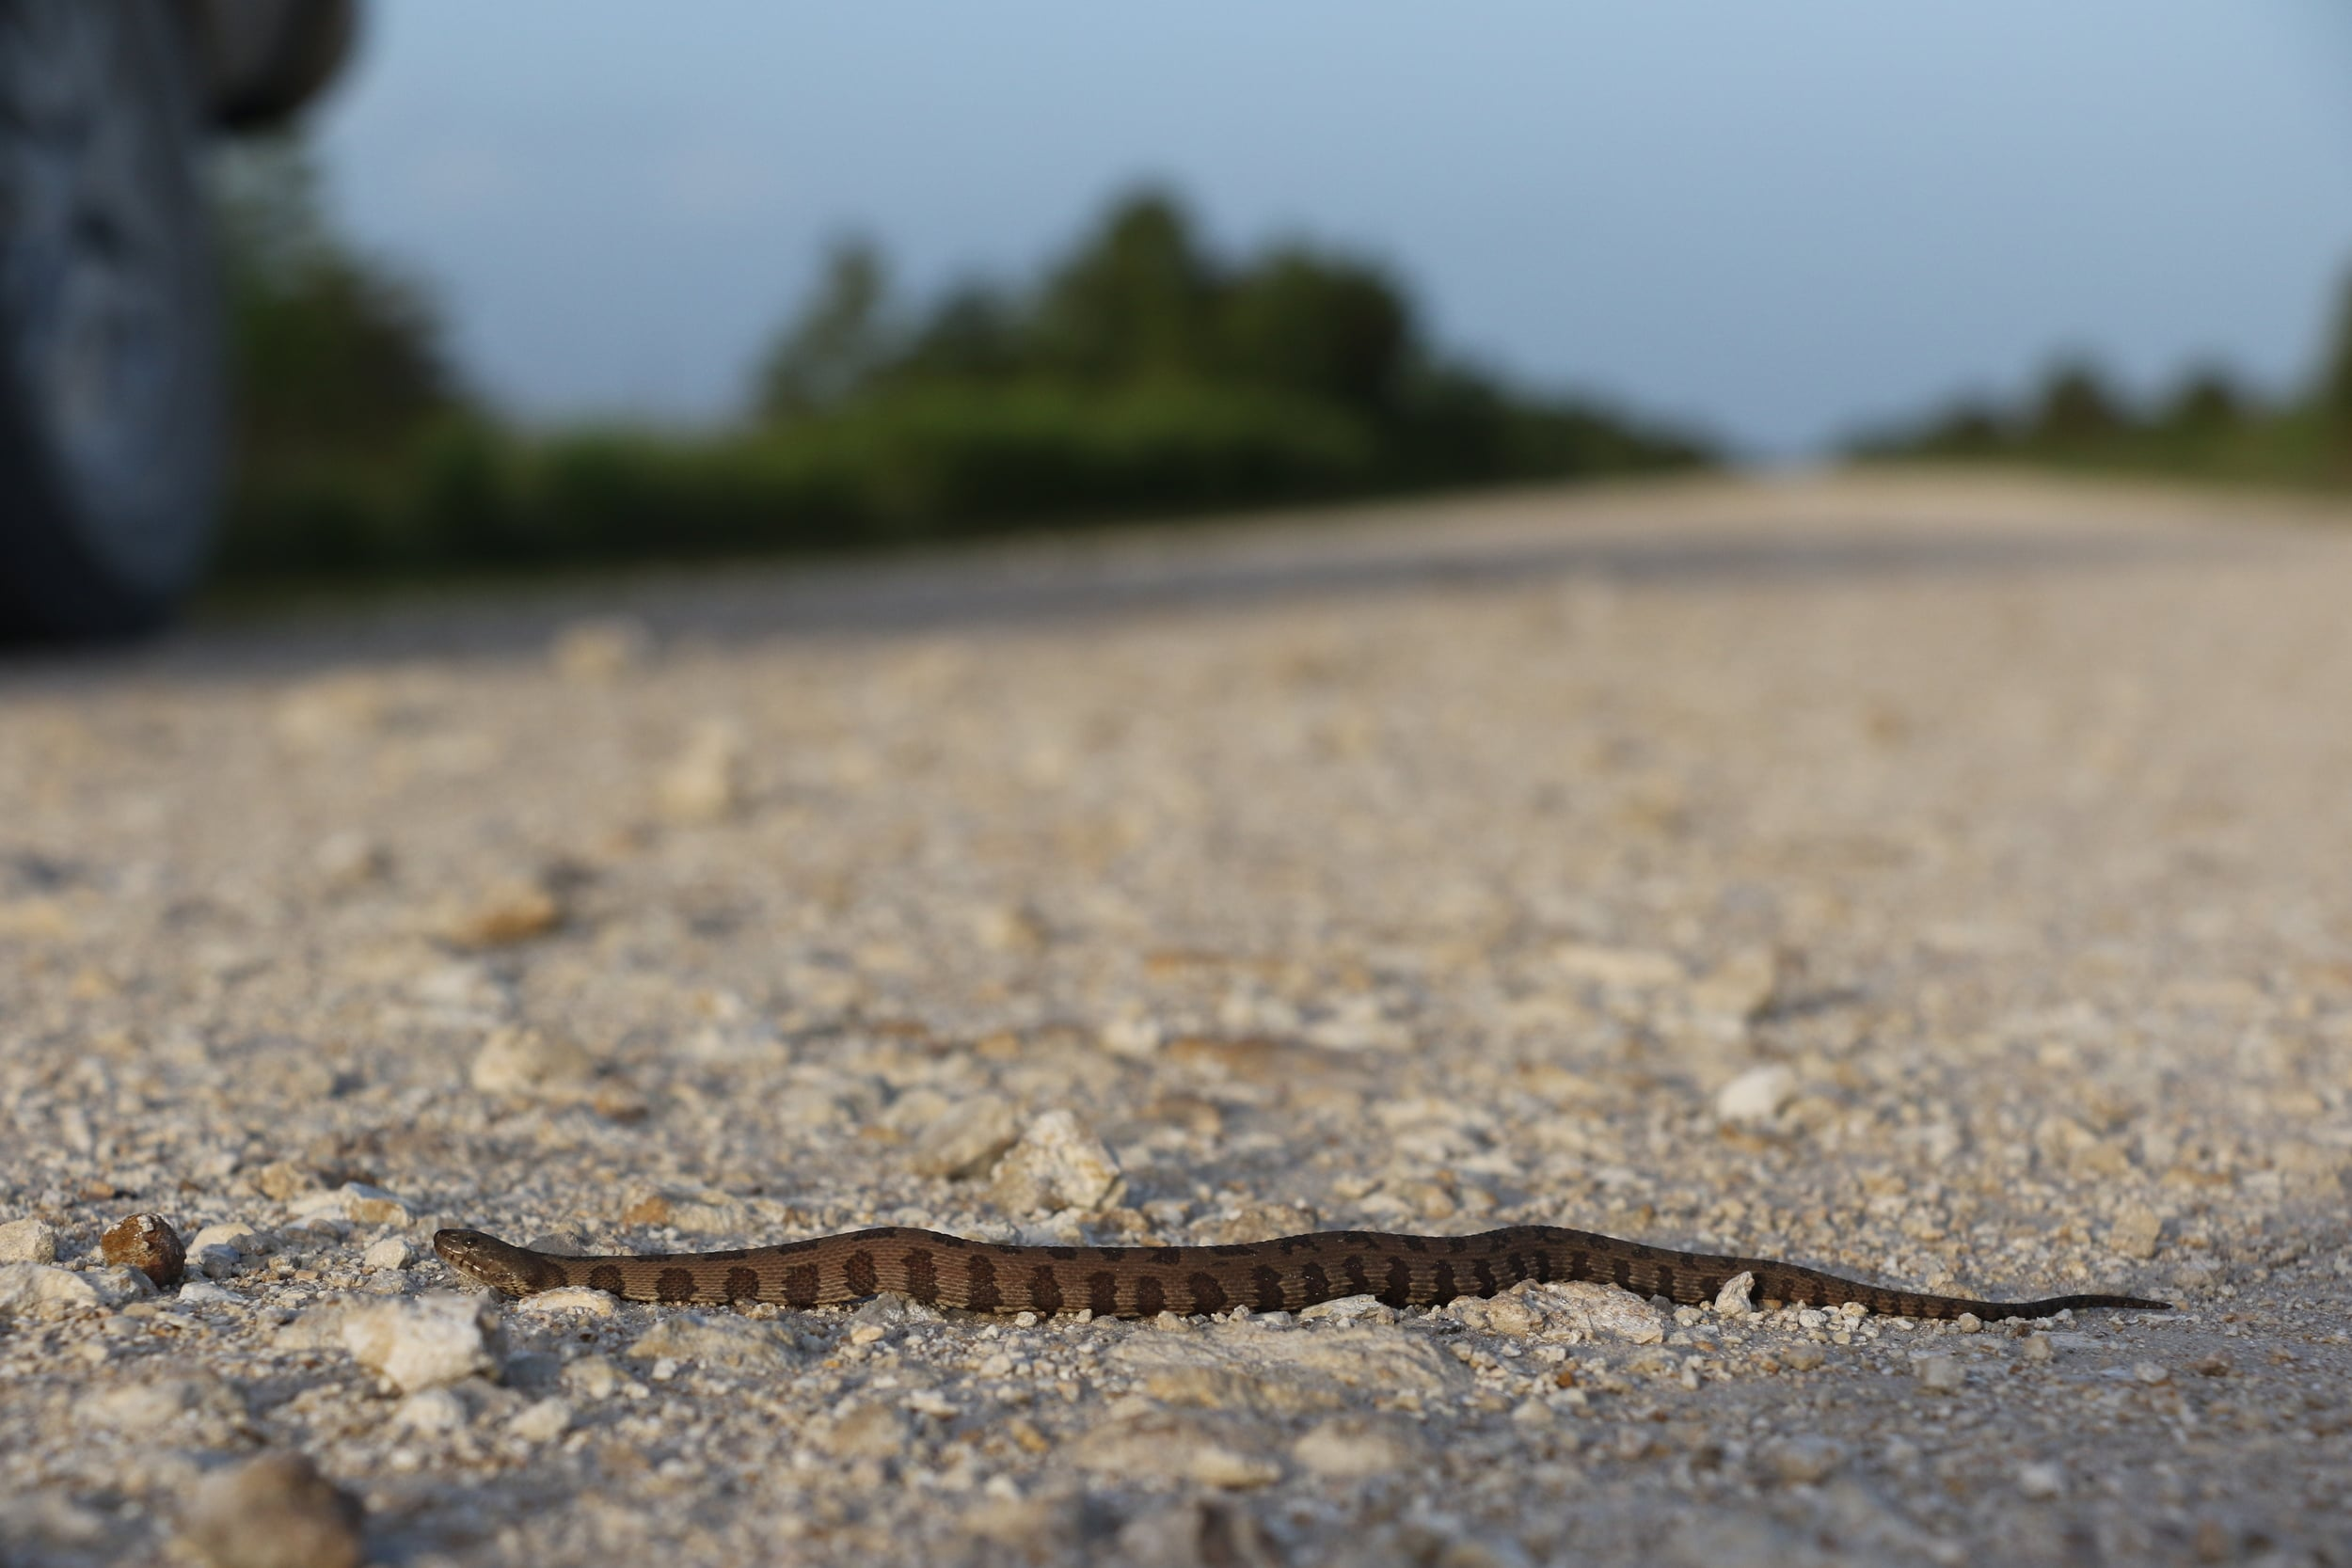 Brown Watersnake - This was cruised in Florida, interestingly about 20 feet from a cottonmouth on the road as well.